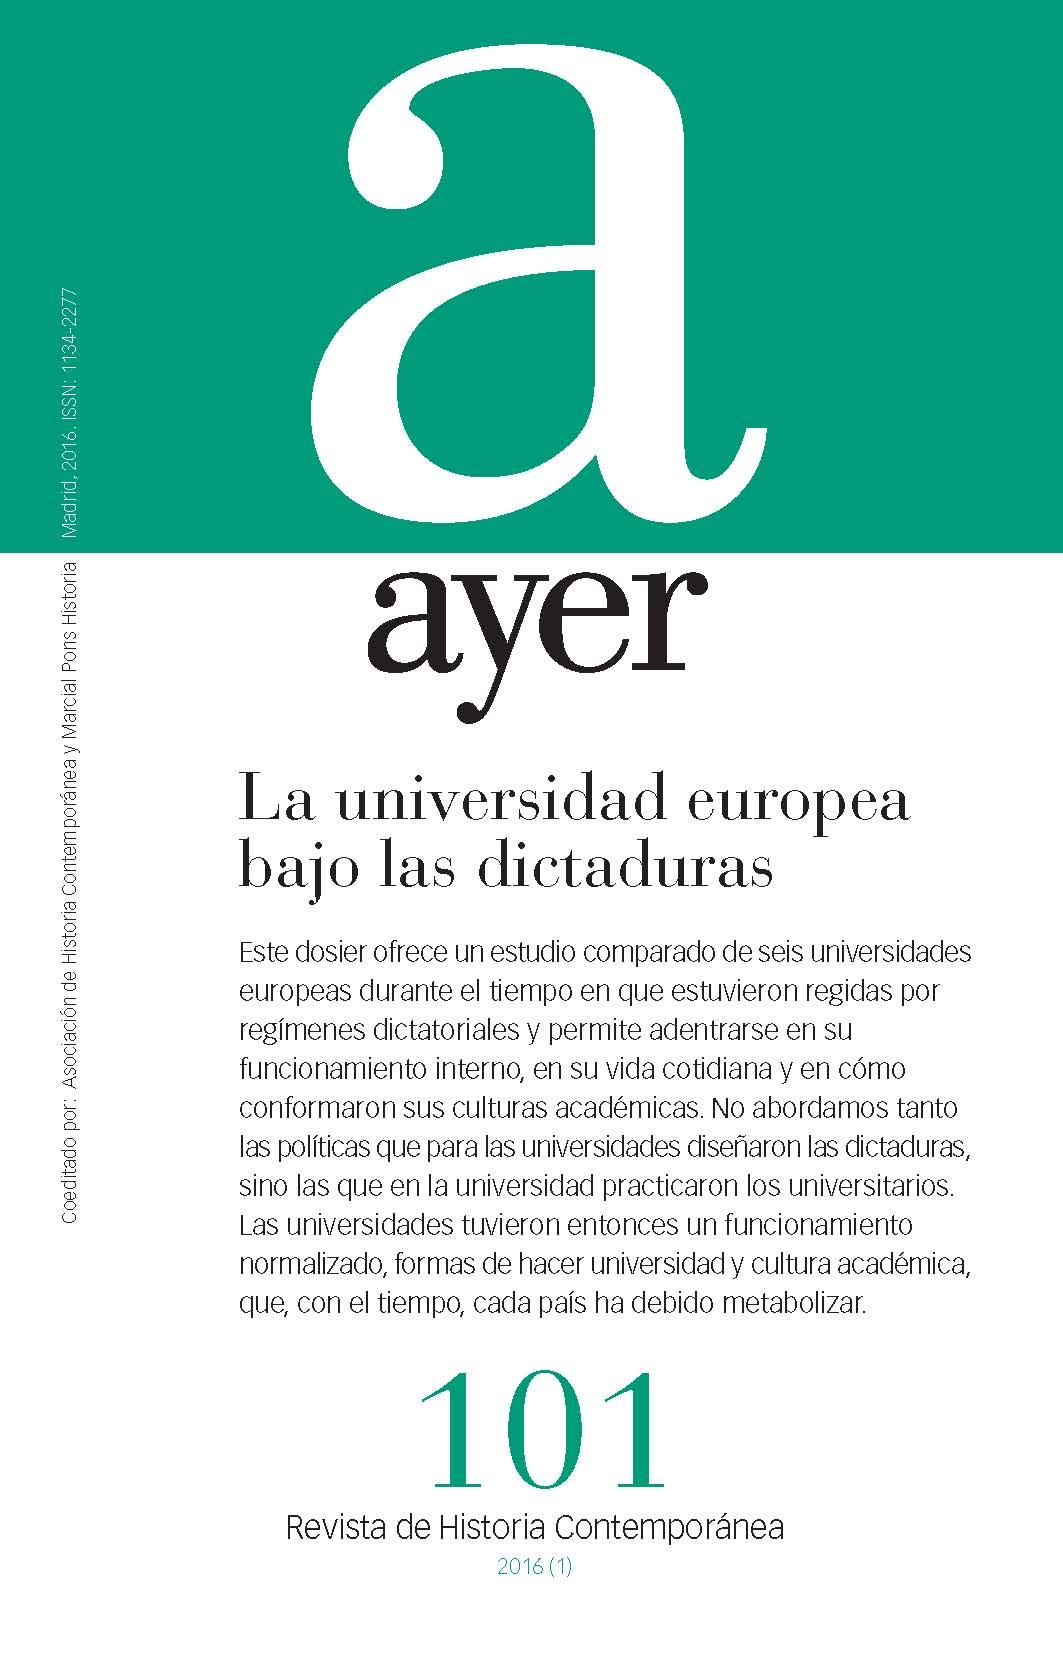 La universidad europea bajo las dictaduras